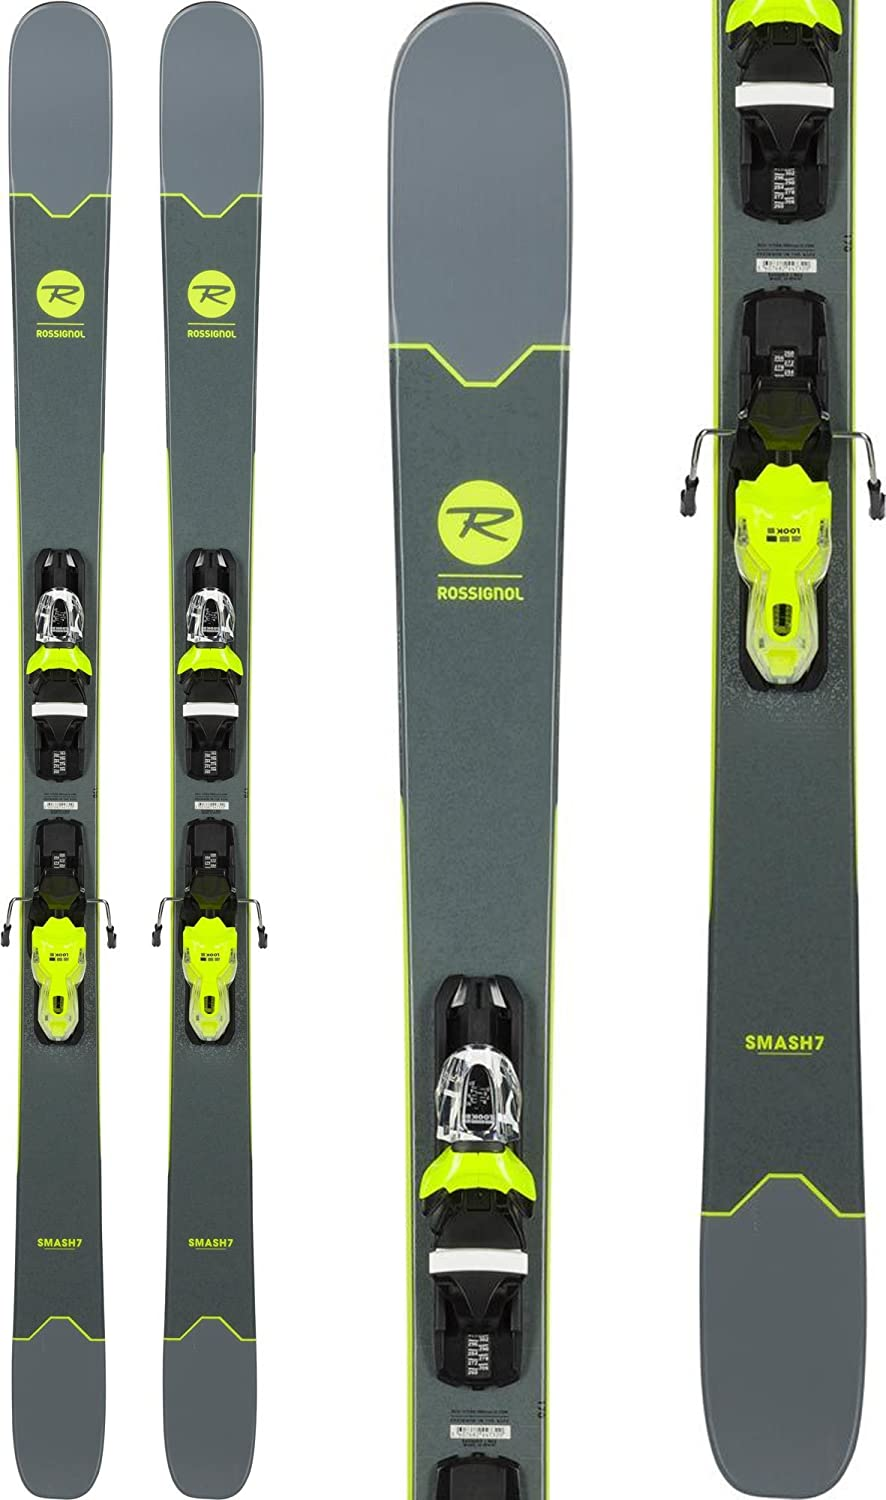 Rossignol Smash 7 Skis w/Xpress 10 Bindings